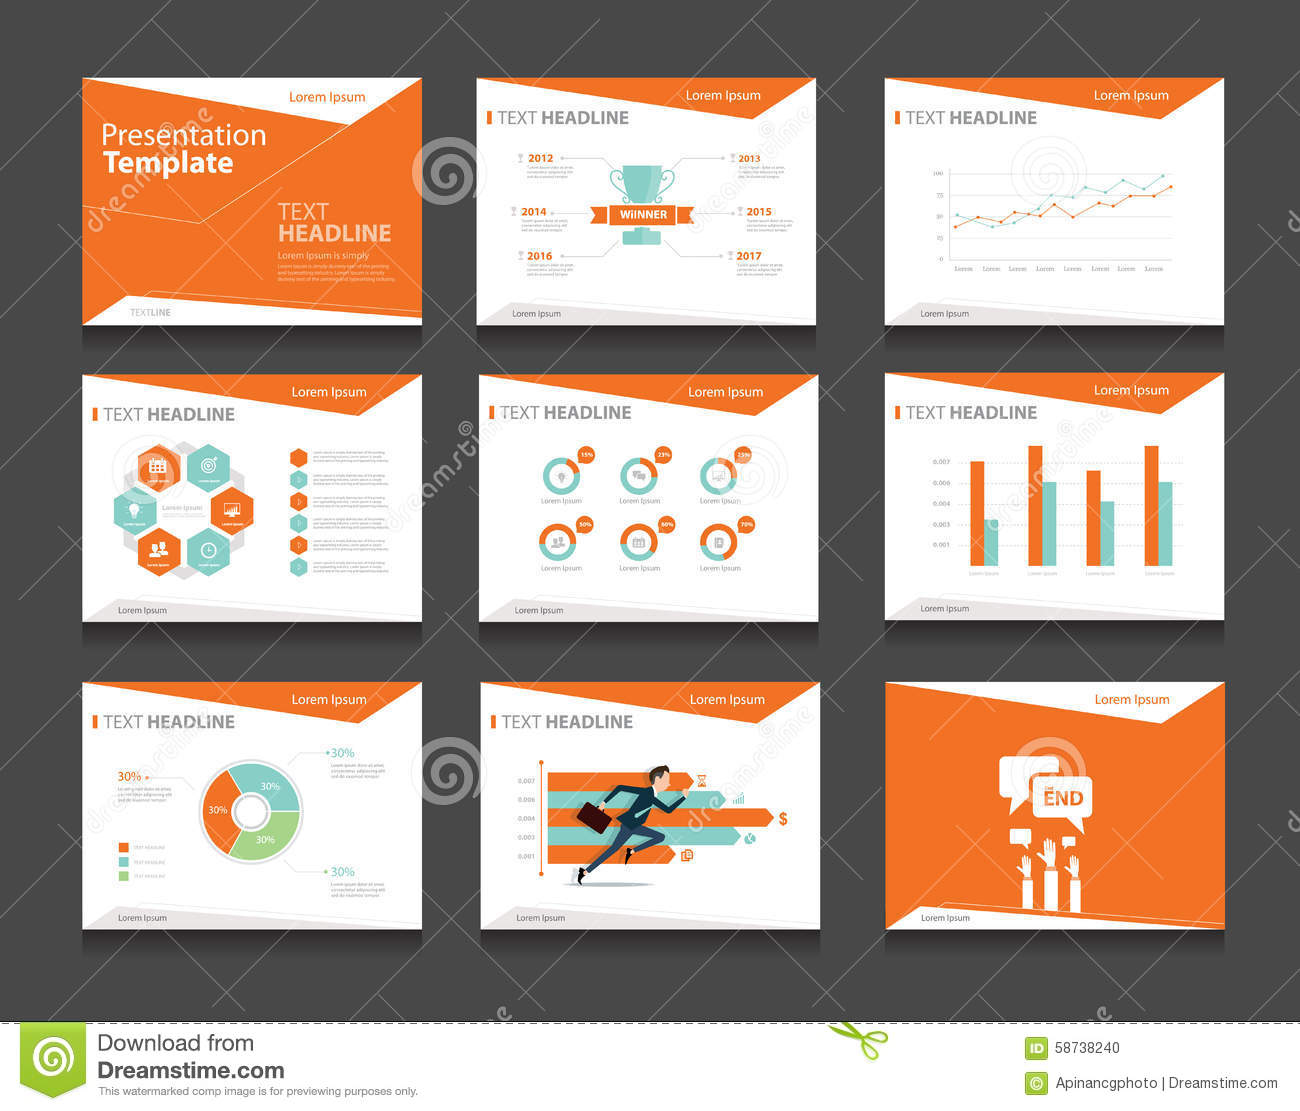 design of powerpoint presentation koni polycode co